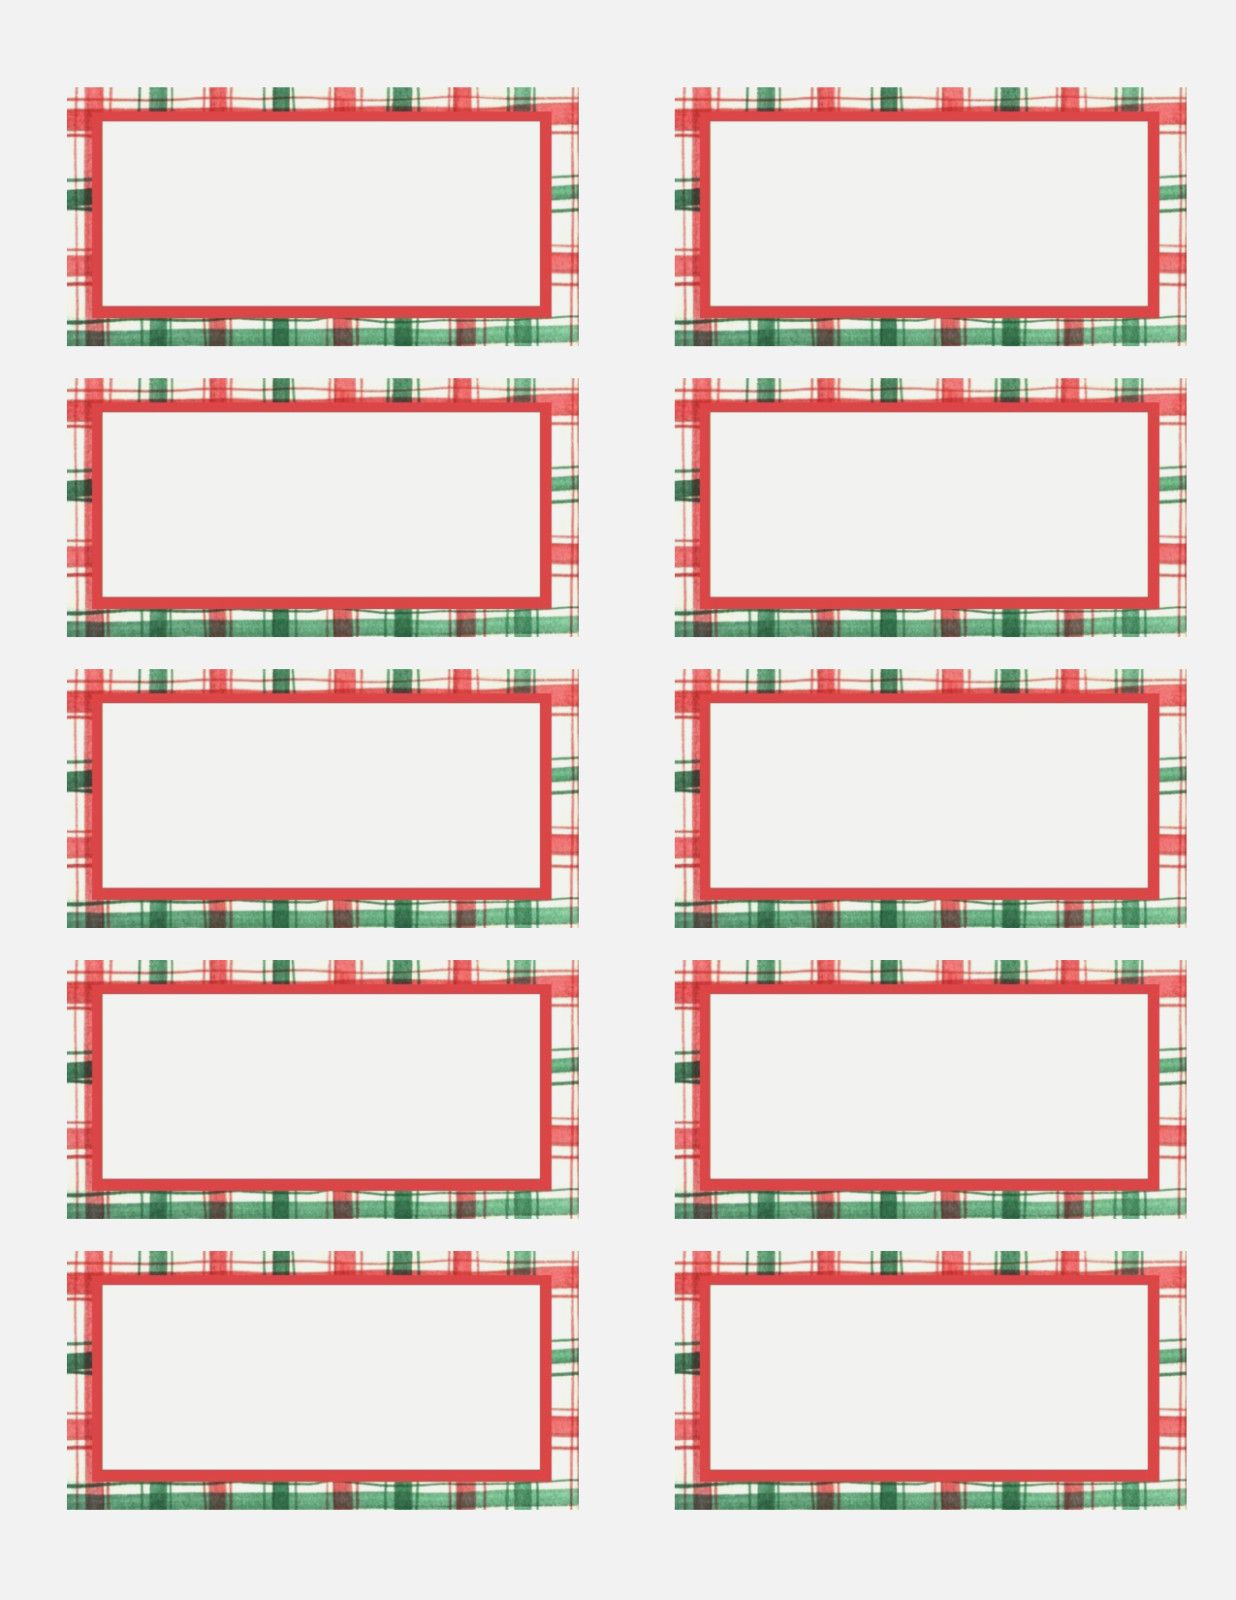 Free Holiday Label Templates Keni Candlecomfortzone Christmas Labels Template Printable Label Templates Holiday Label Templates